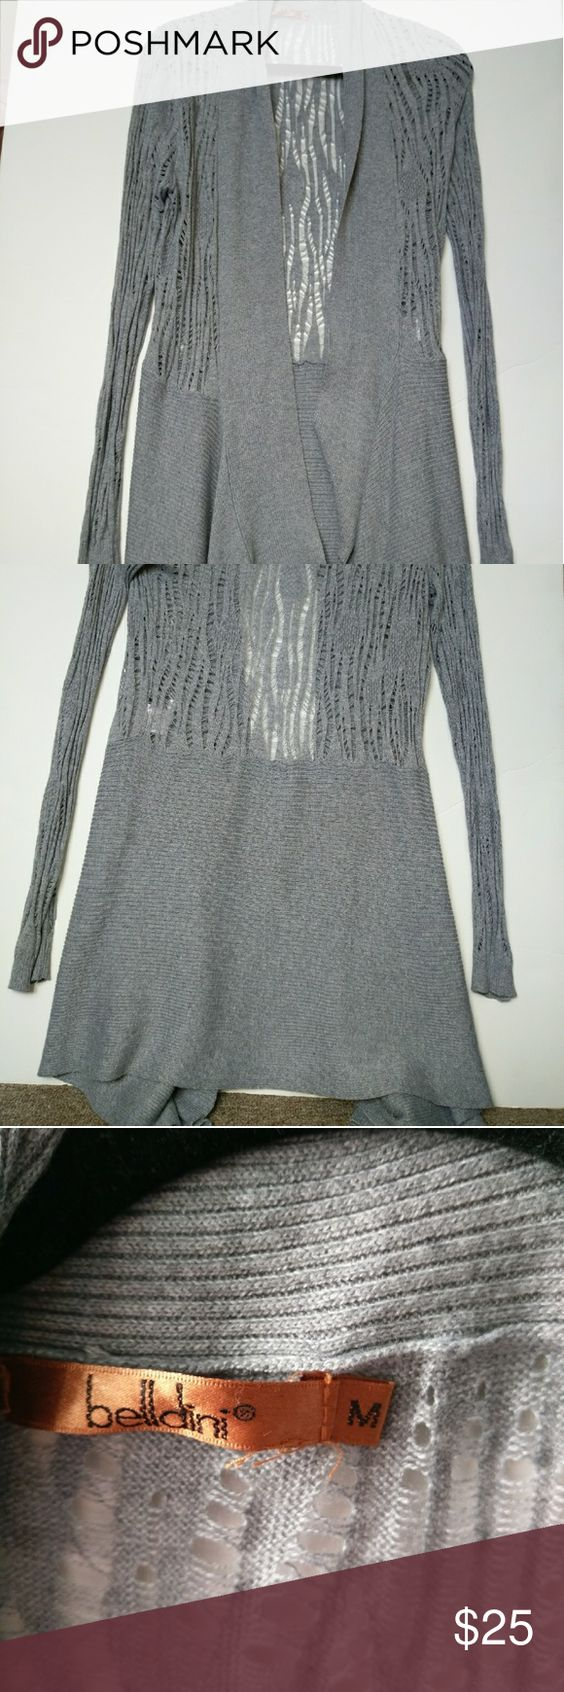 Cardigan New medium and large size Belldini Sweaters Cardigans